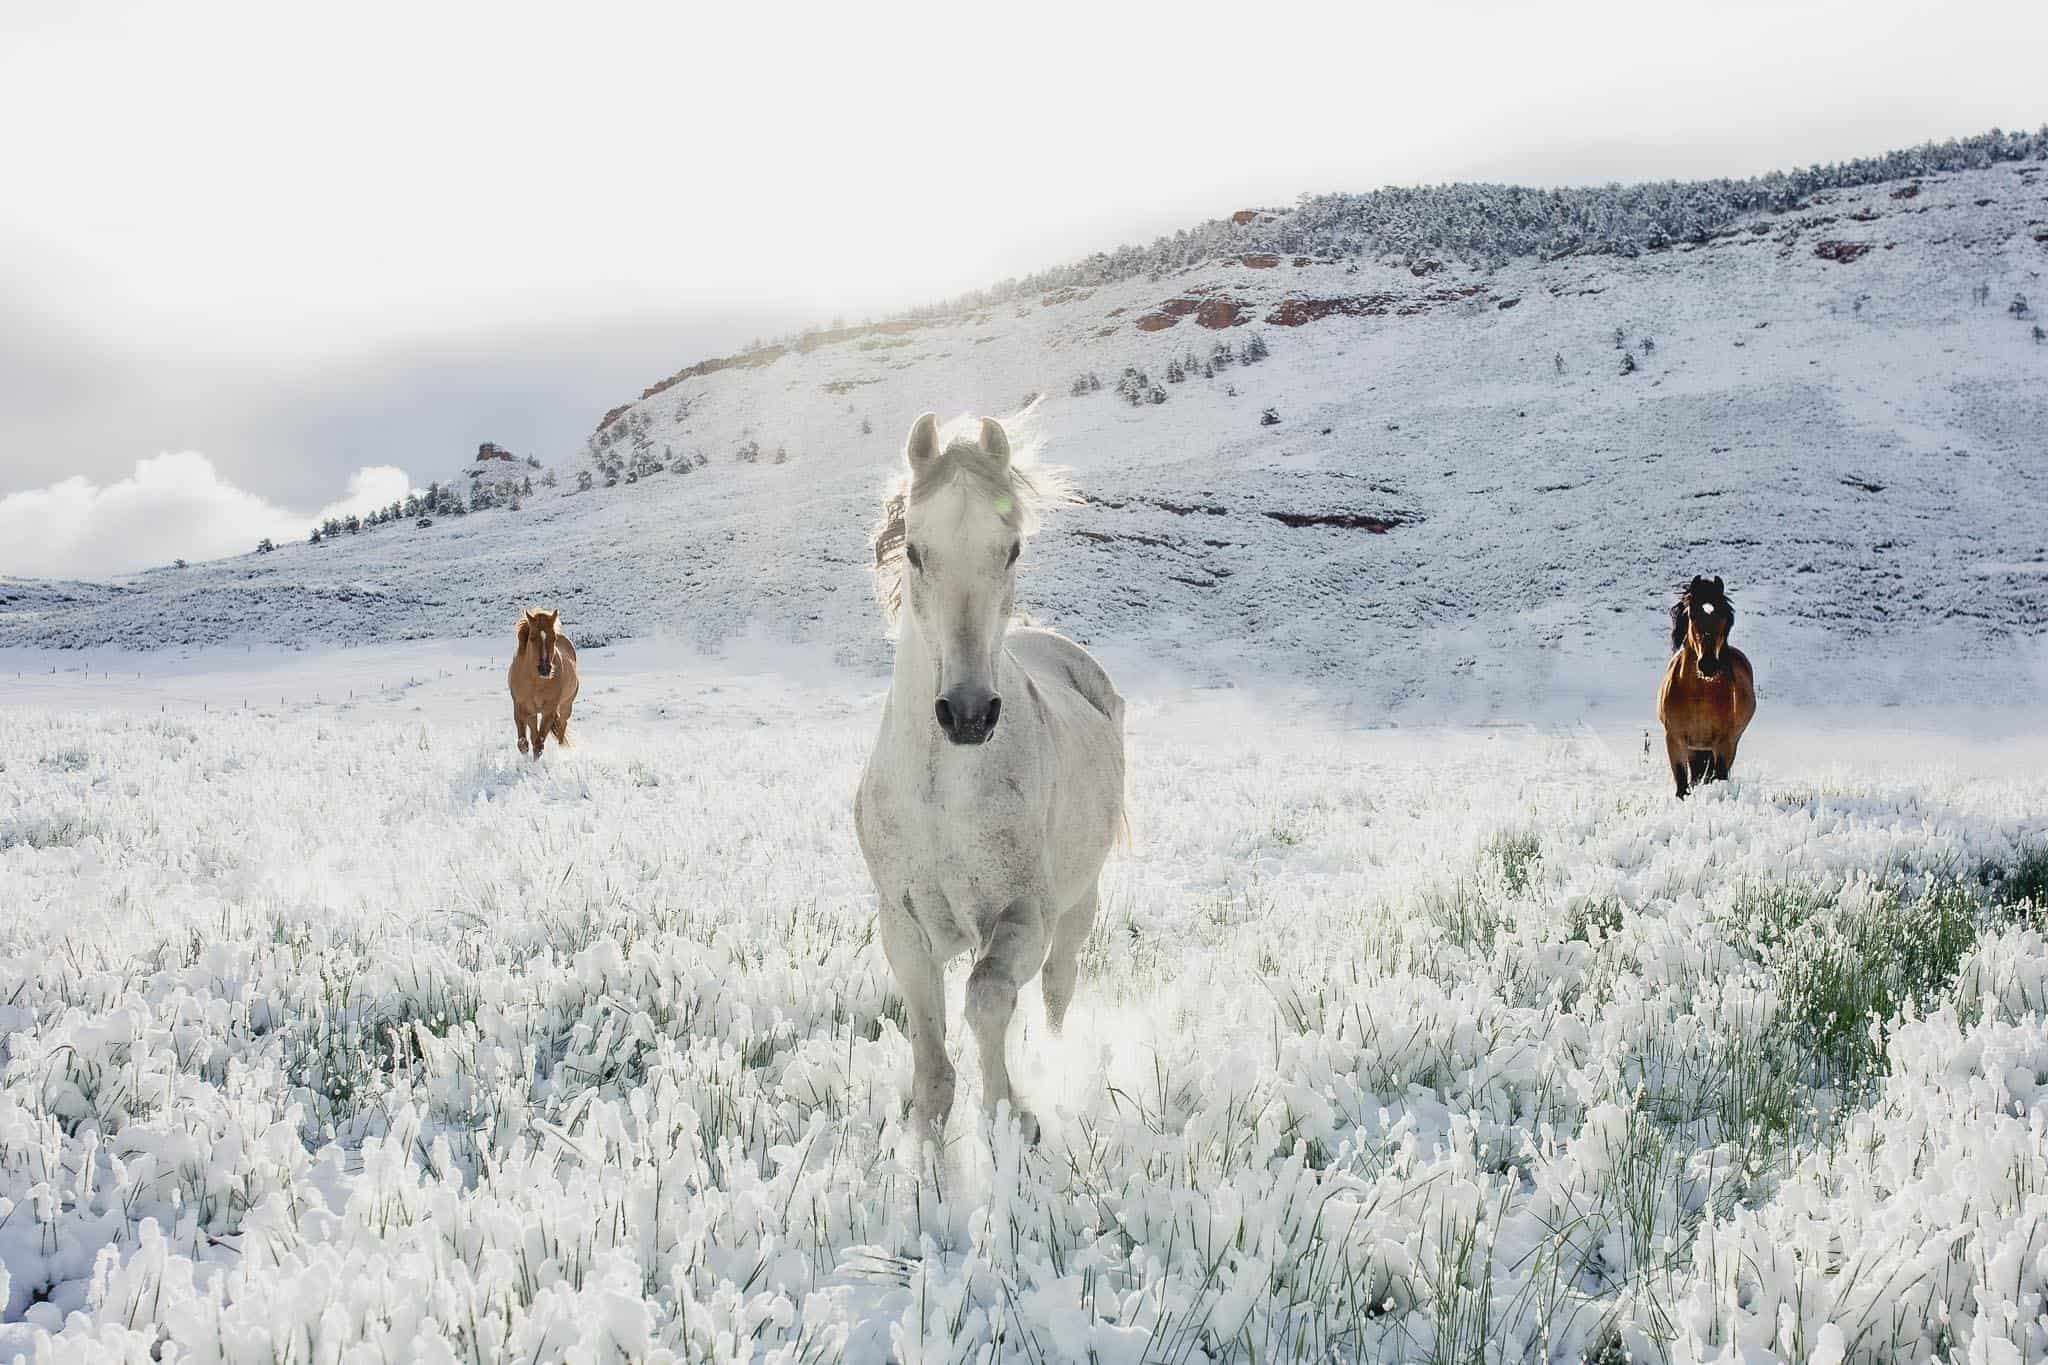 three horses are running over snow-cover grass, they are truly beautiful animals